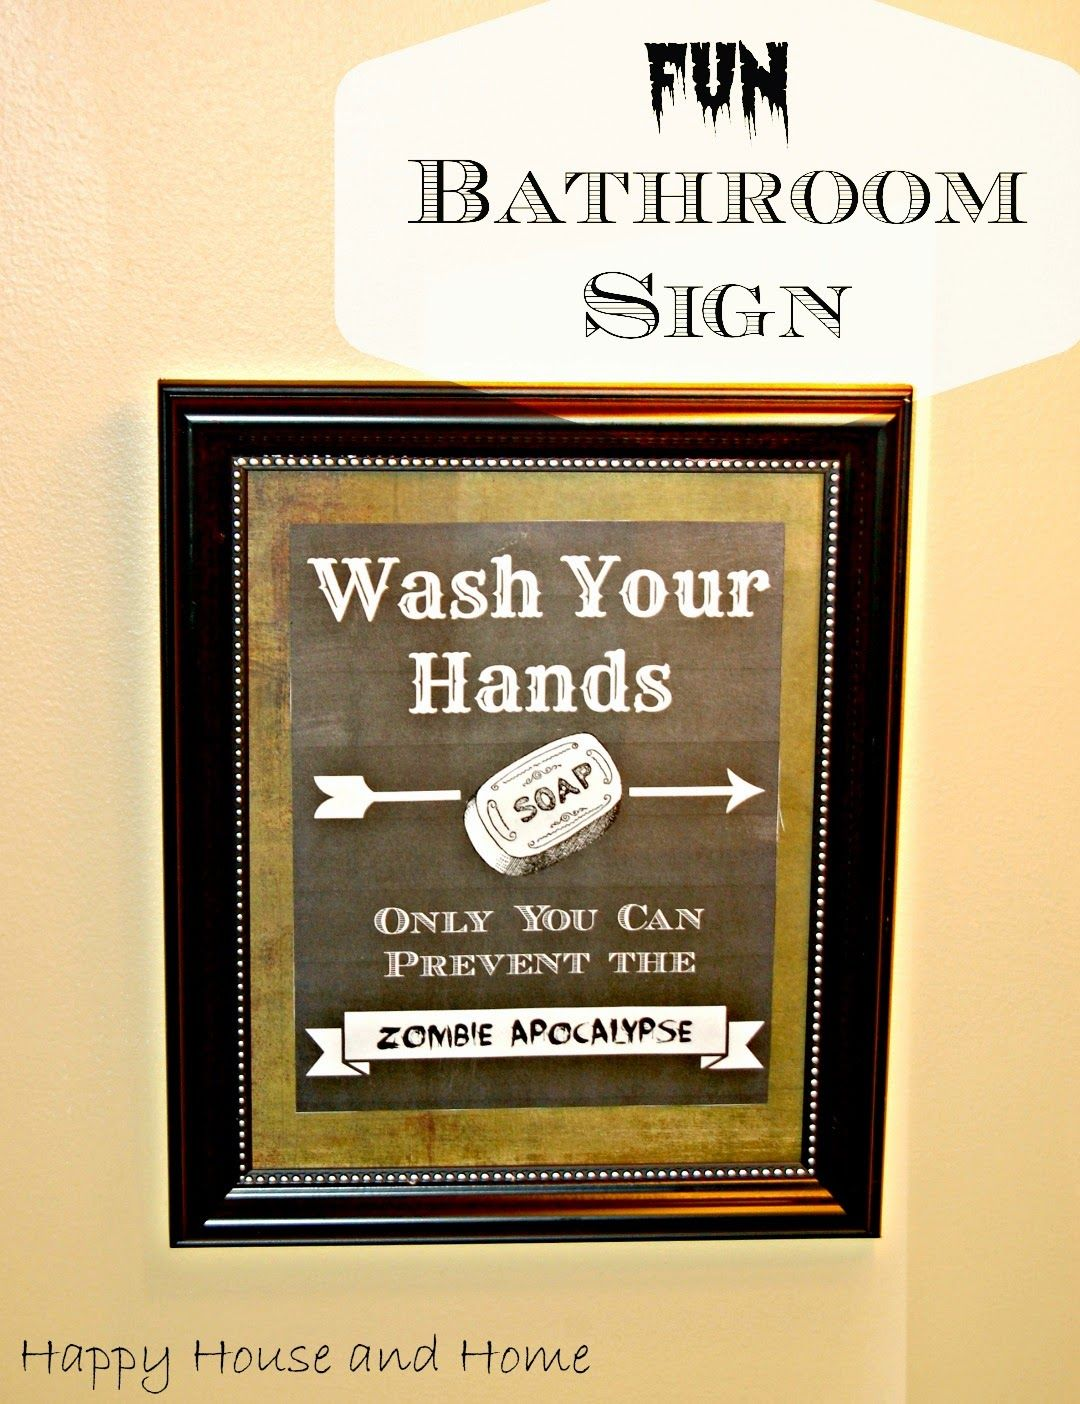 Bathroom sign for home - This Free Printable Makes The Cutest Fun Bathroom Sign Wash Your Hands For The Kids Or Your Bathroom You Re New Home Is Dying To Have This Lol